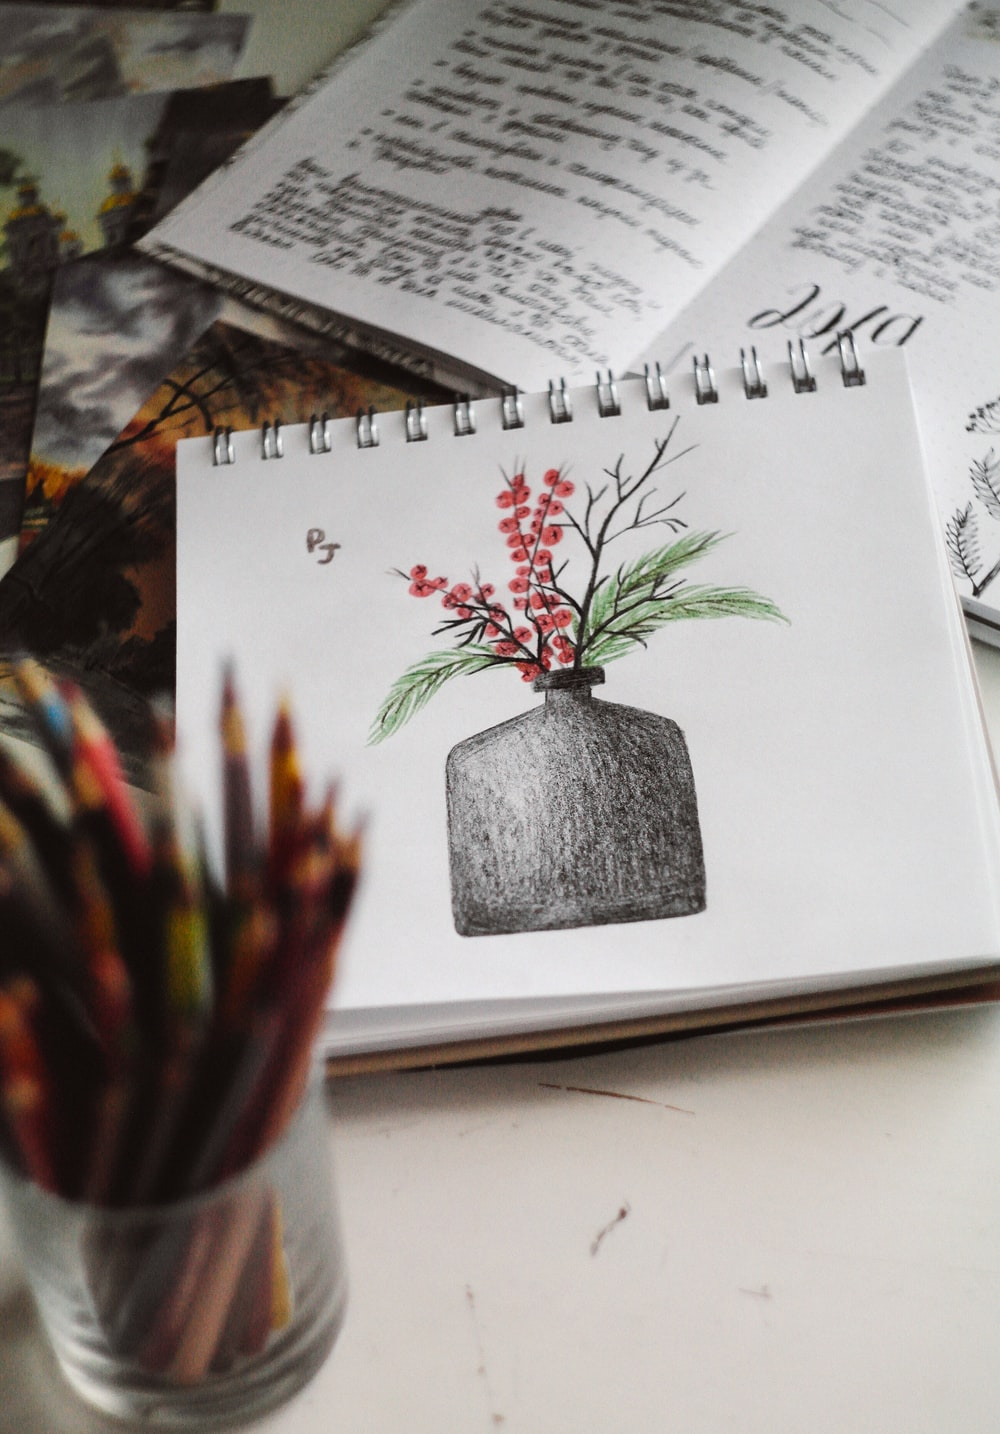 green and red plant on white book page